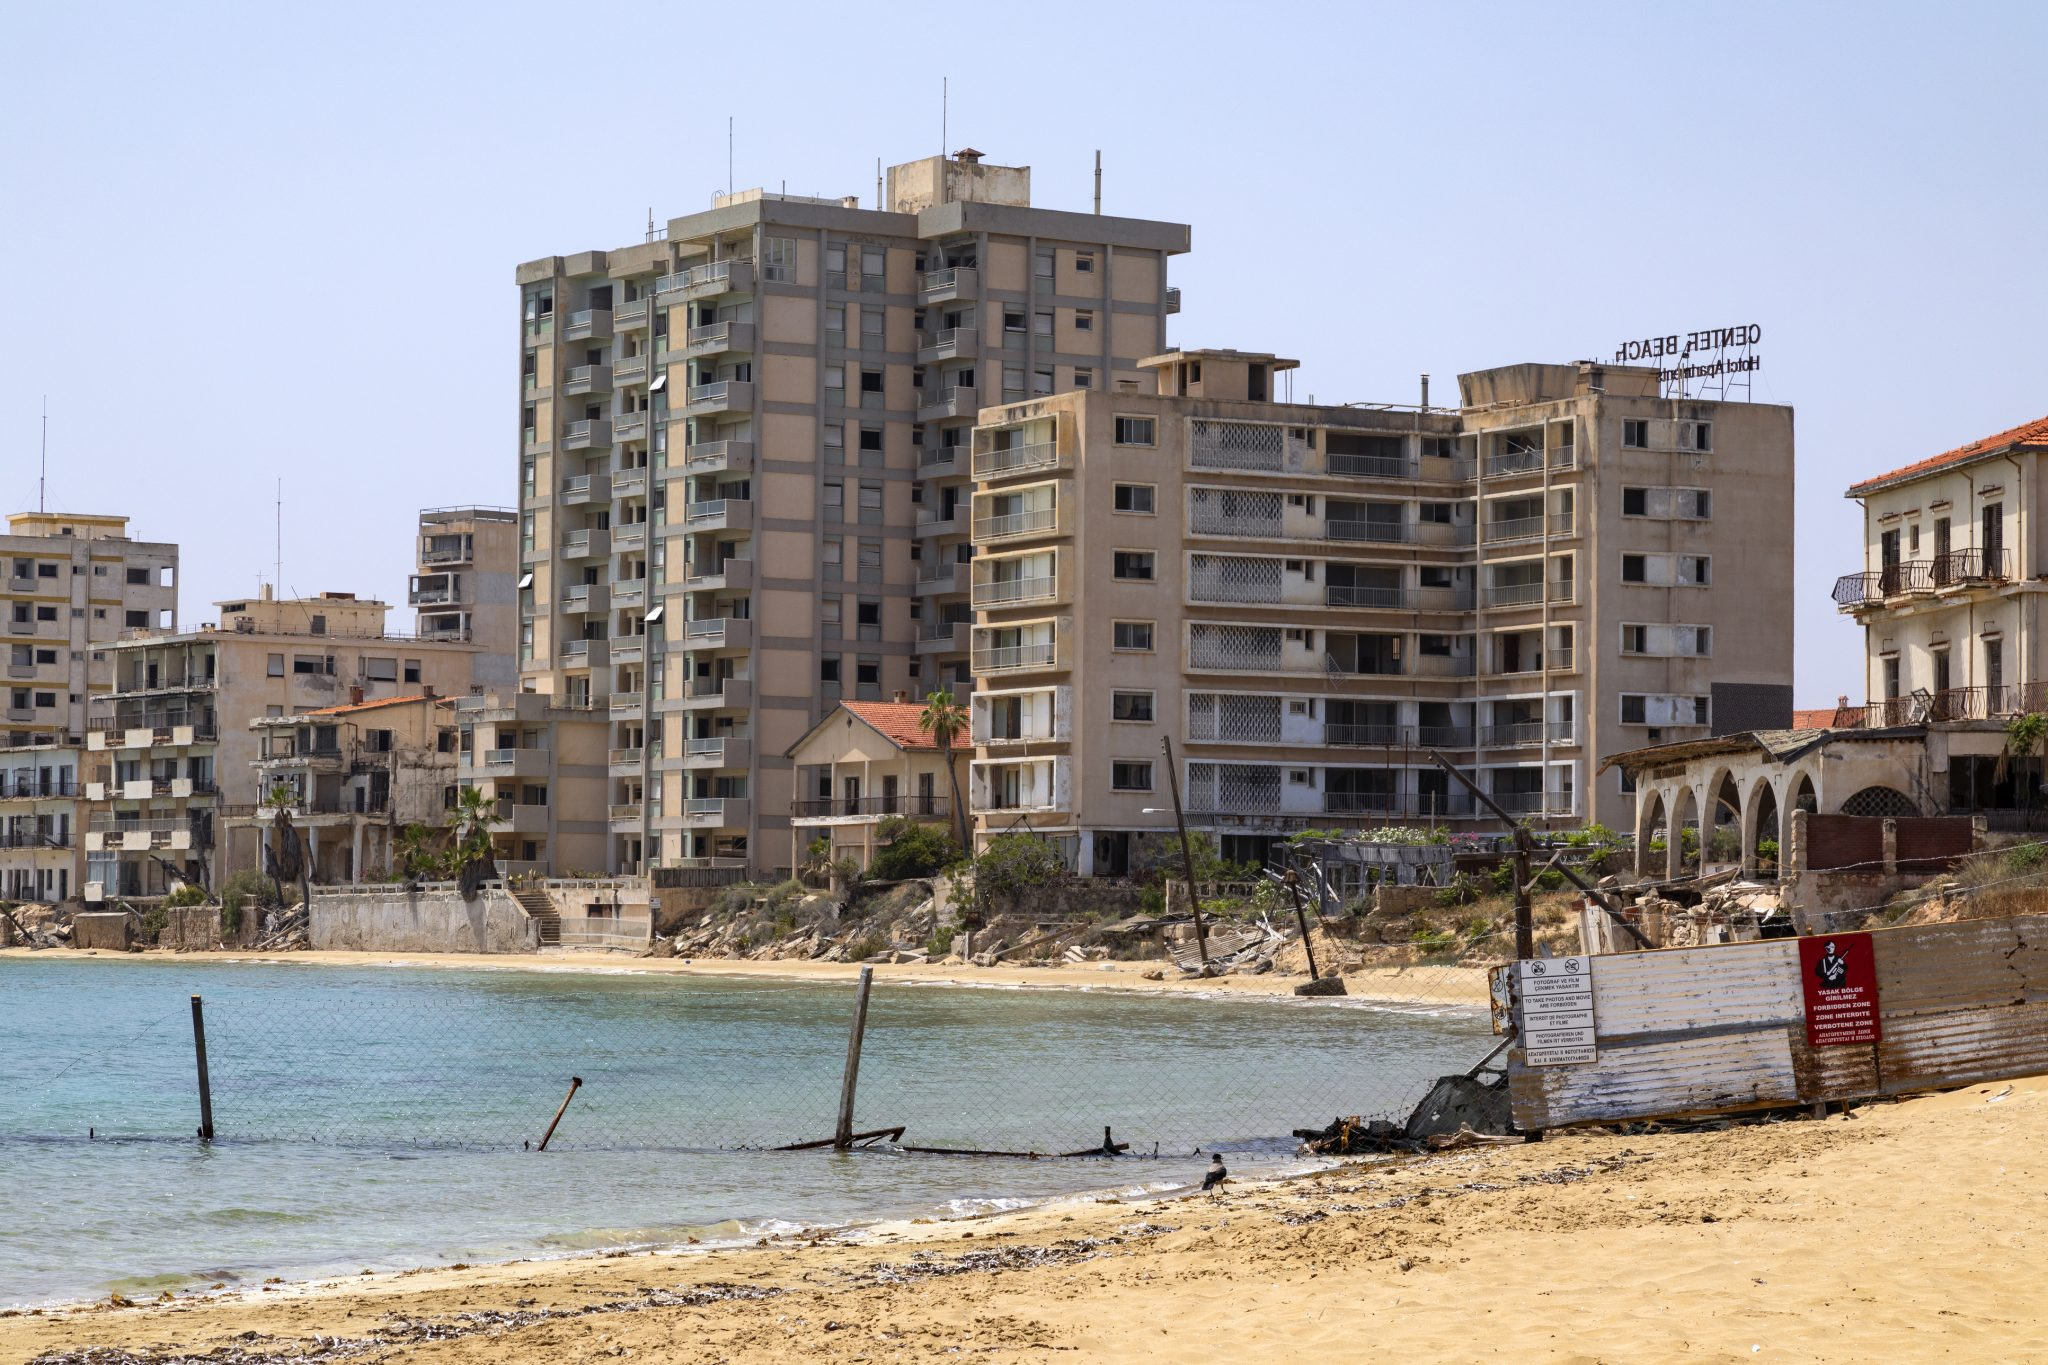 The abandoned southern quarter of the Cypriot city of Famagusta.